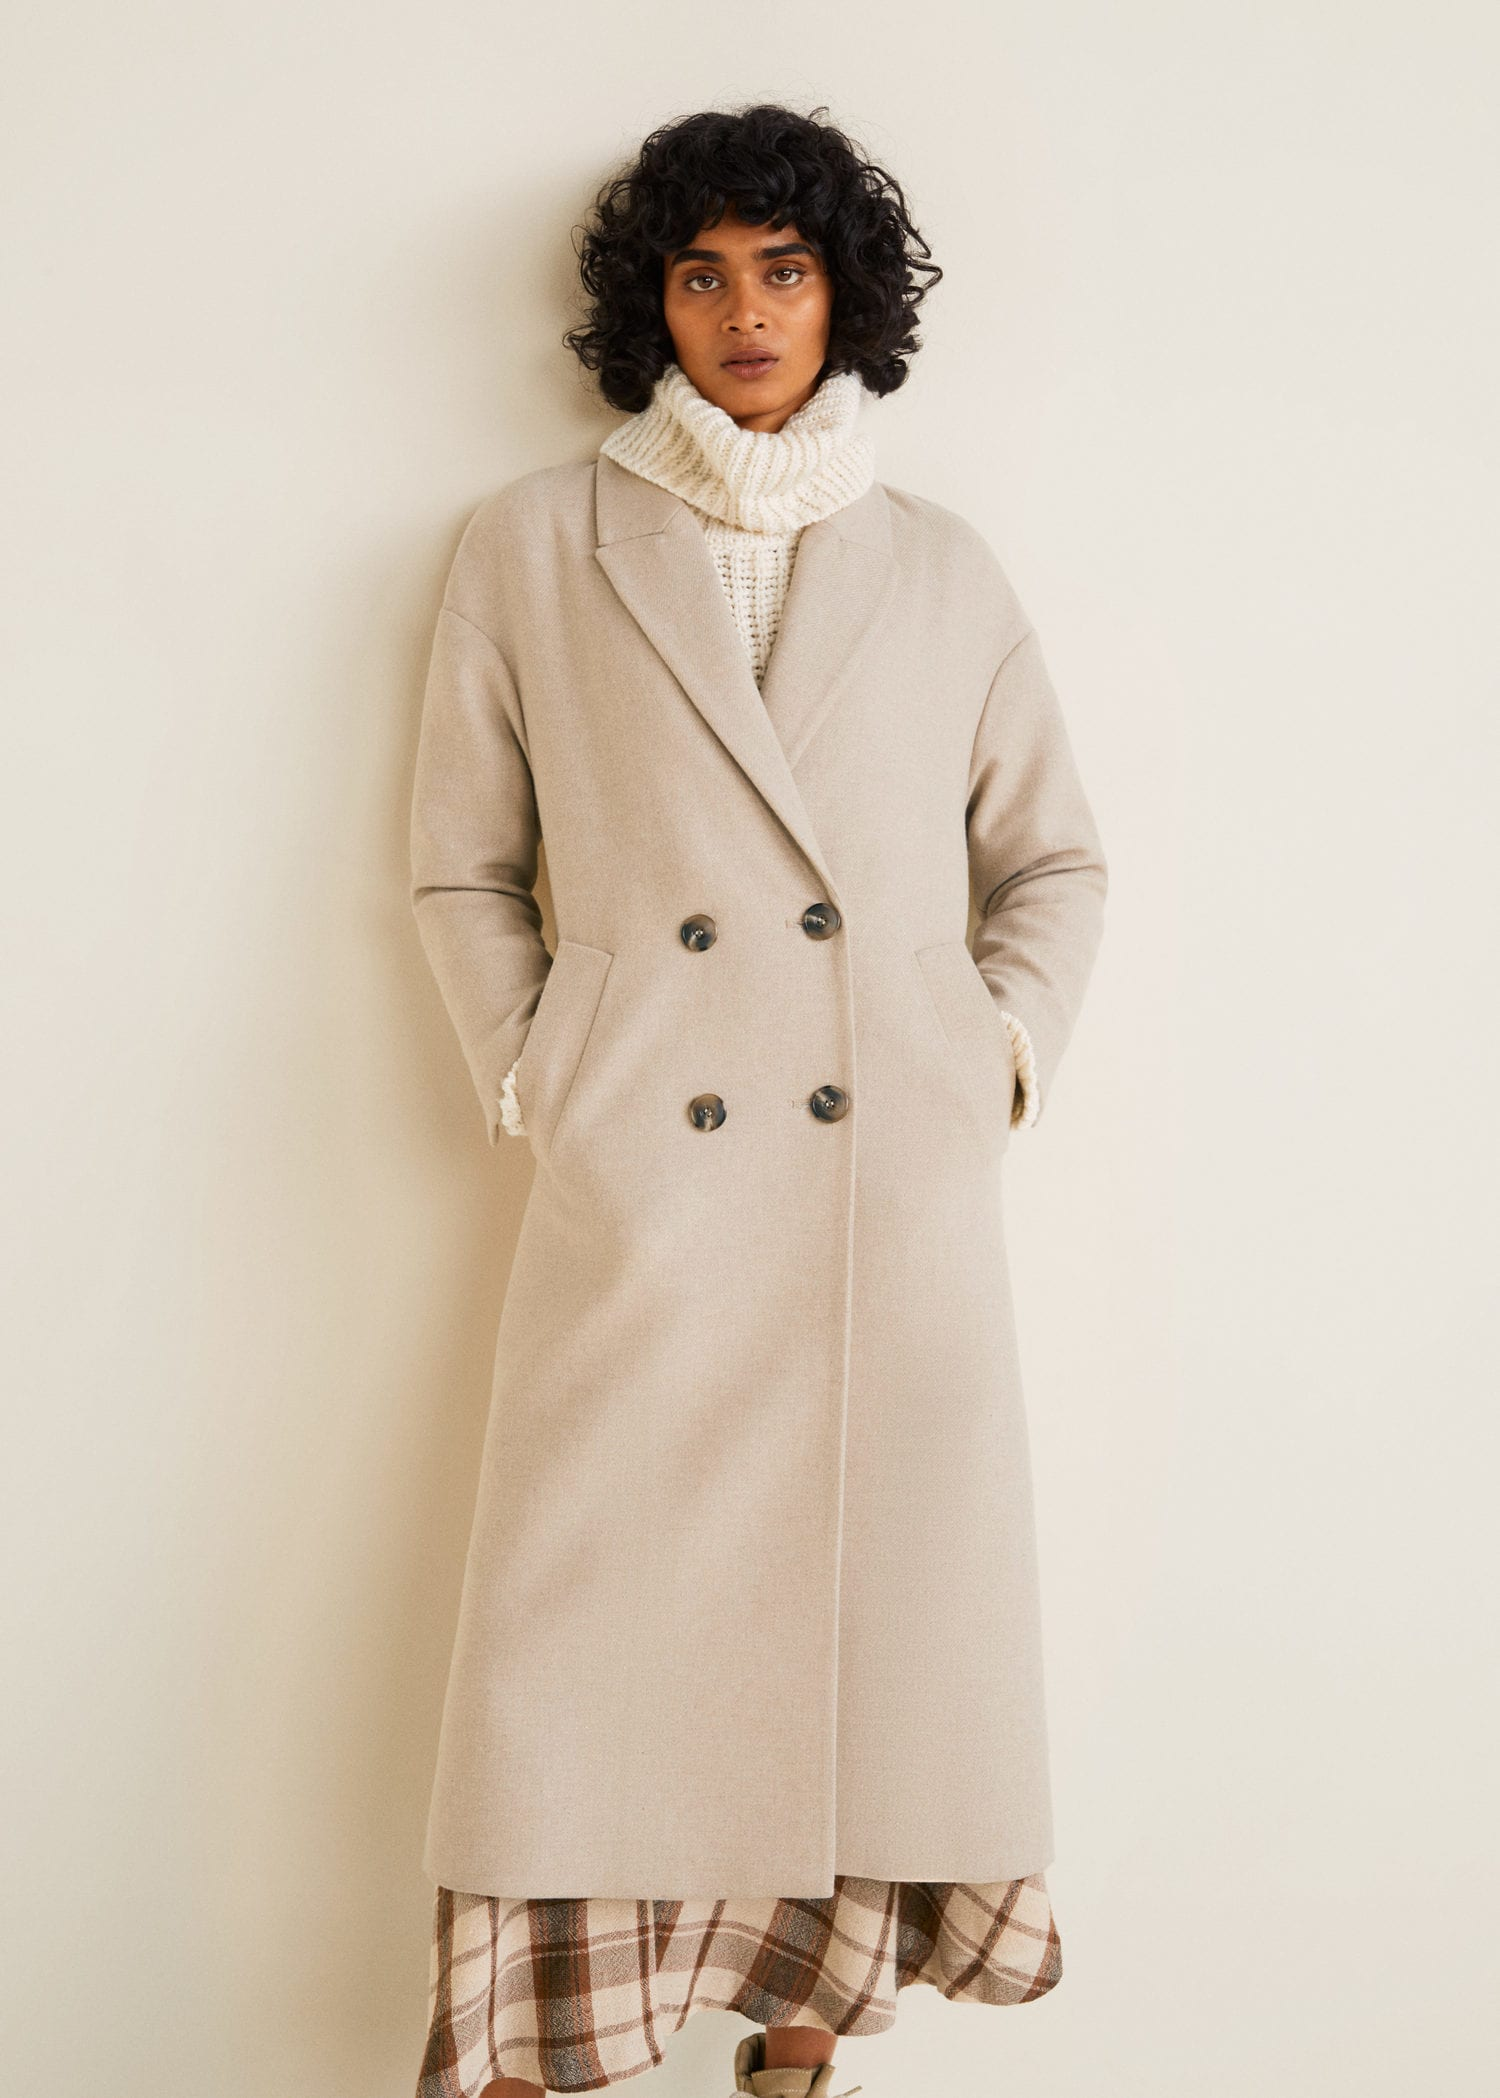 Unstructured wool-blend coat by Mango, available on mango.com for $149 Irina Shayk Outerwear Exact Product